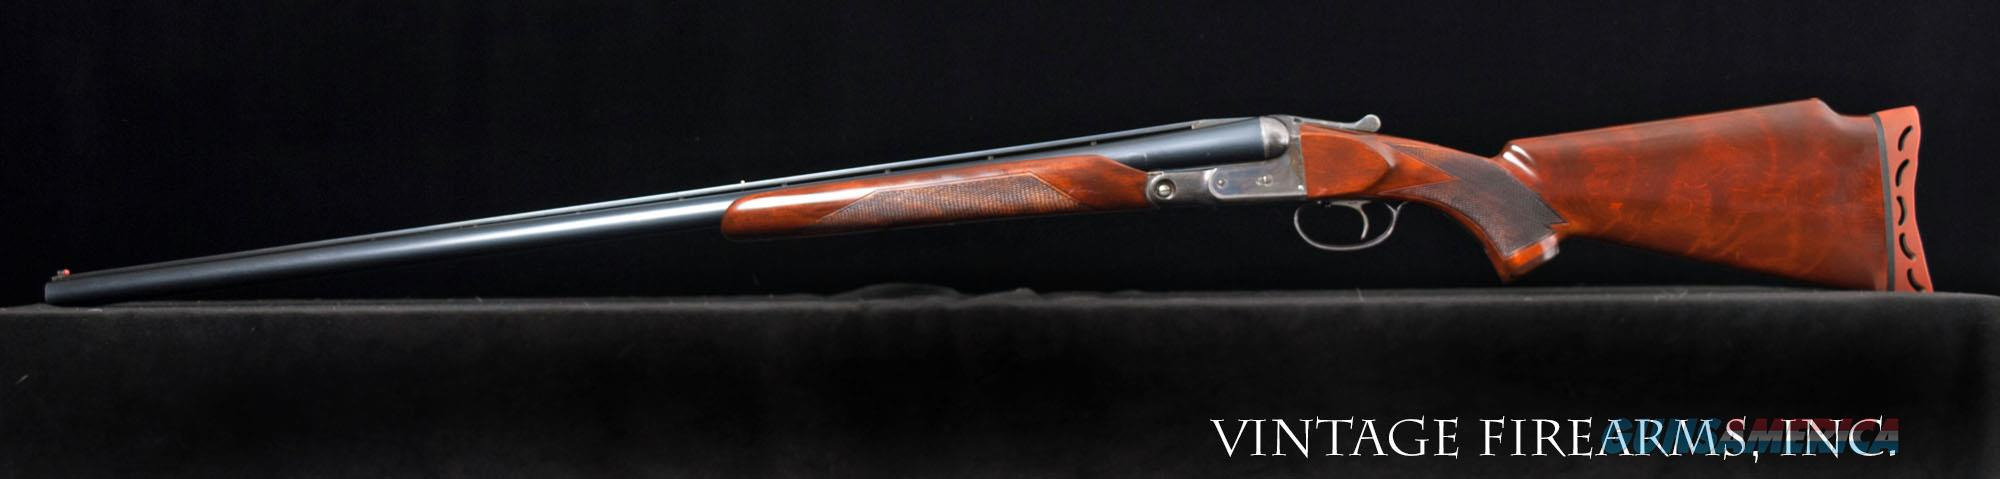 "Parker VHE 12 Gauge - FACTORY VENT RIB, BEAVERTAIL LIVE BIRD, 32""   Guns > Shotguns > Parker Shotguns"